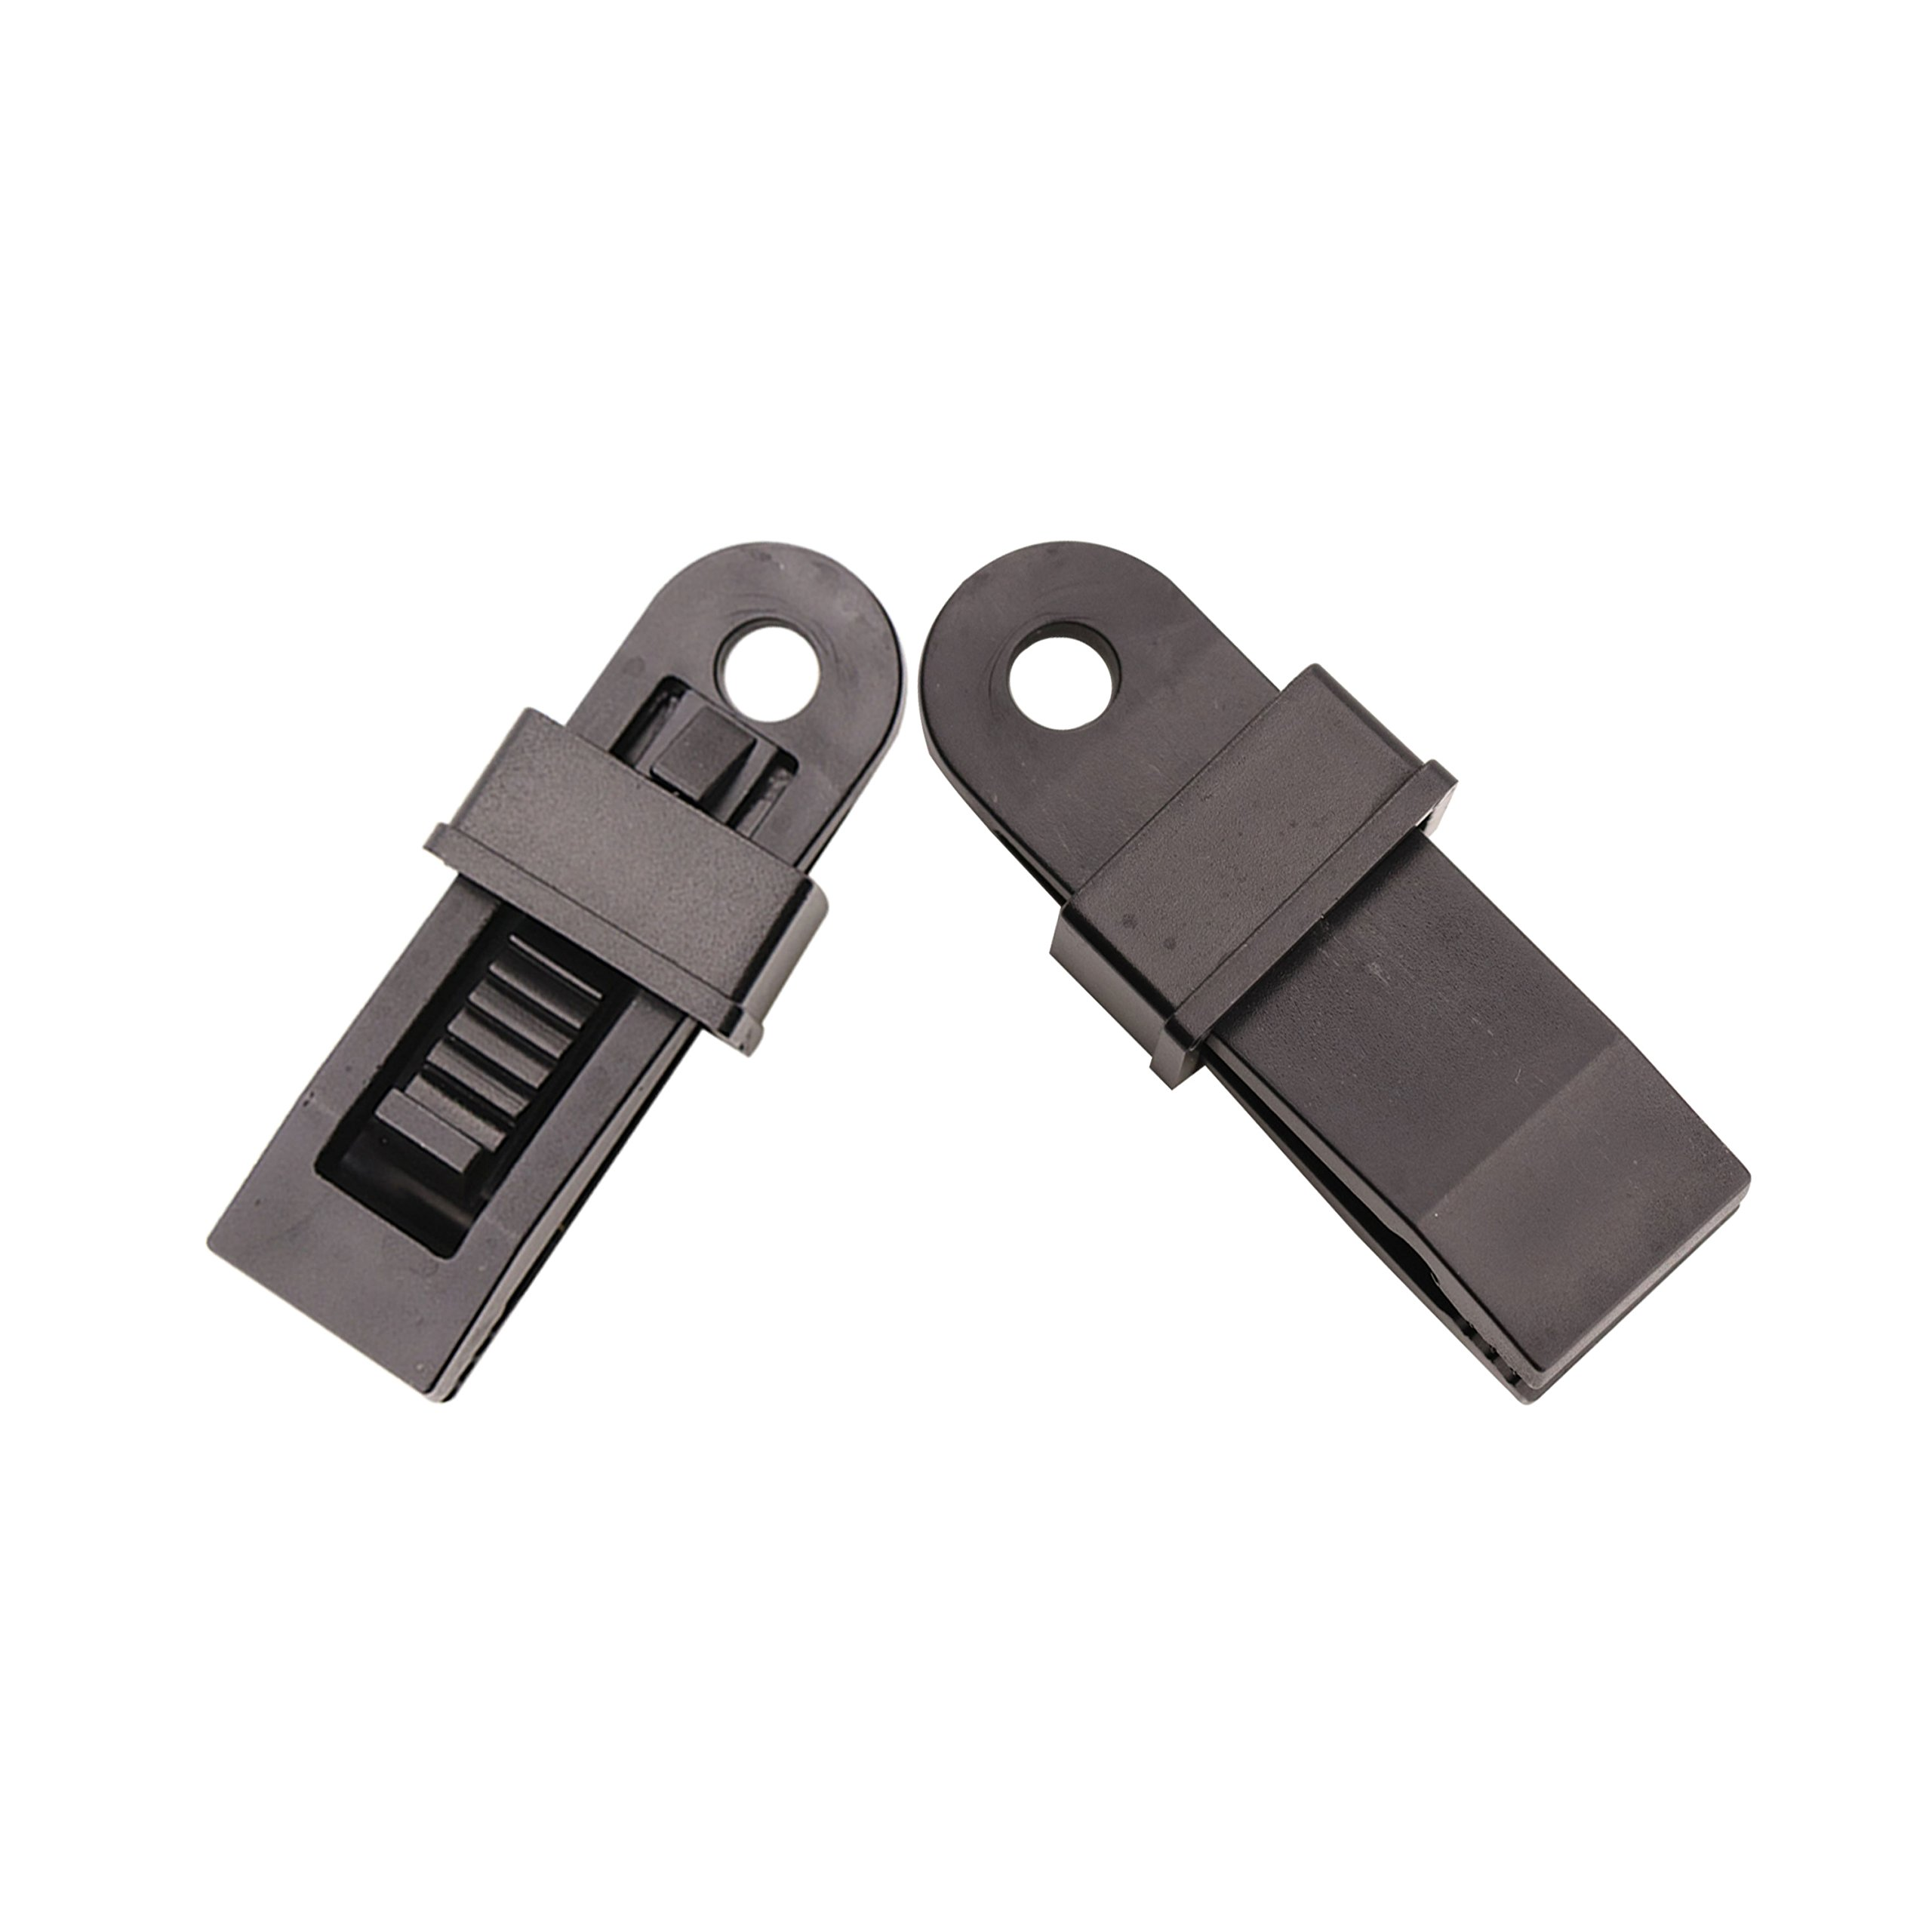 SZHOWORLD 10PCS Black Heavy Duty Outdoor Camping Tarp Clips Sliding-Lock Grip Tent/Awning Clamps Tie Downs (10PCS Large Size) by SZHOWORLD (Image #7)